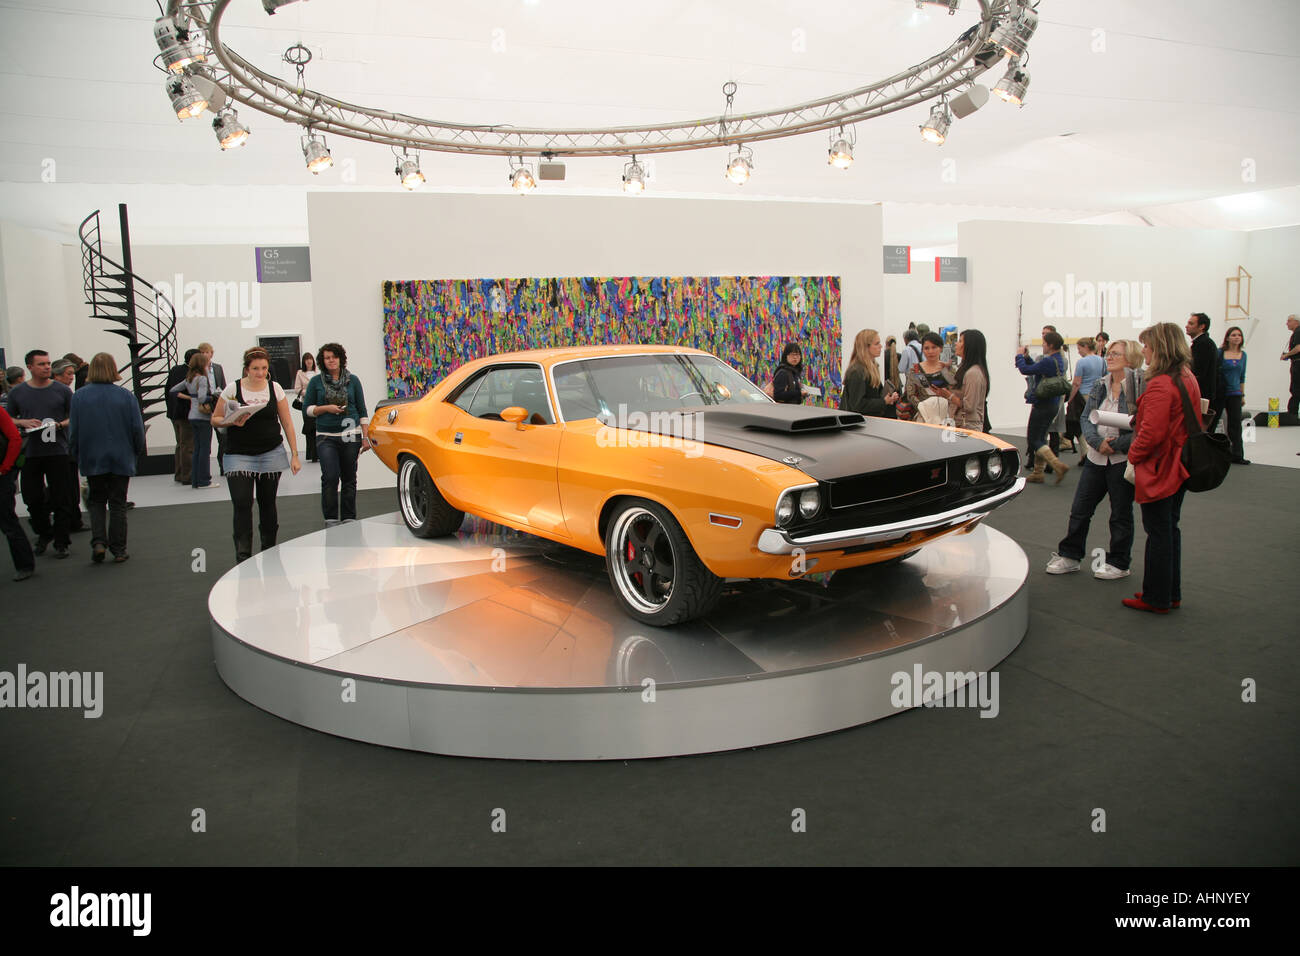 An artwork by Richard Prince on display at the Frieze Art Fair, Regents, Park, London, UK. - Stock Image